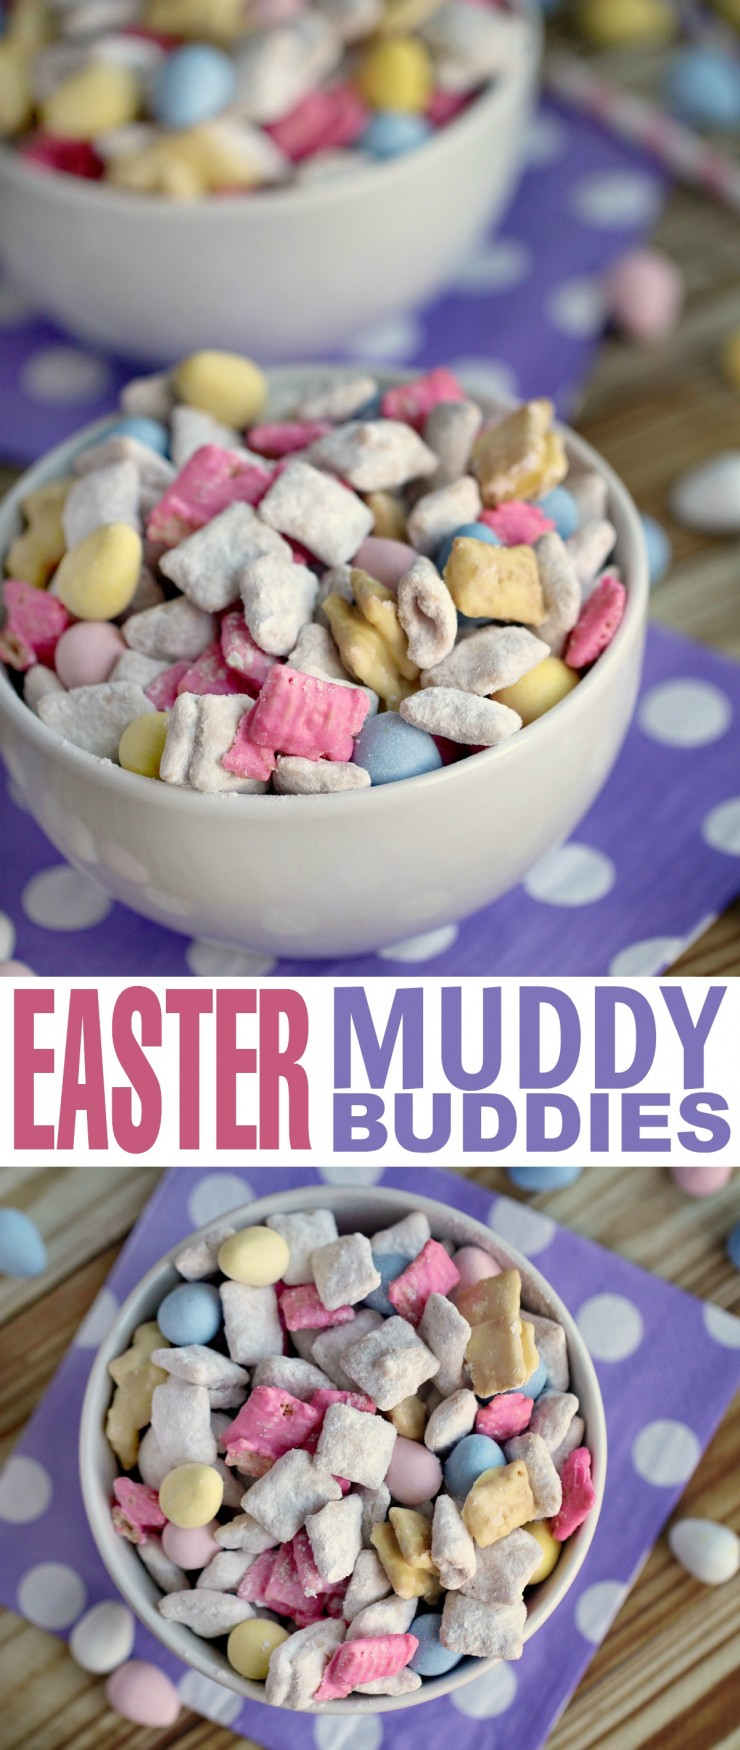 Easter Muddy Buddies Frugal Mom Eh